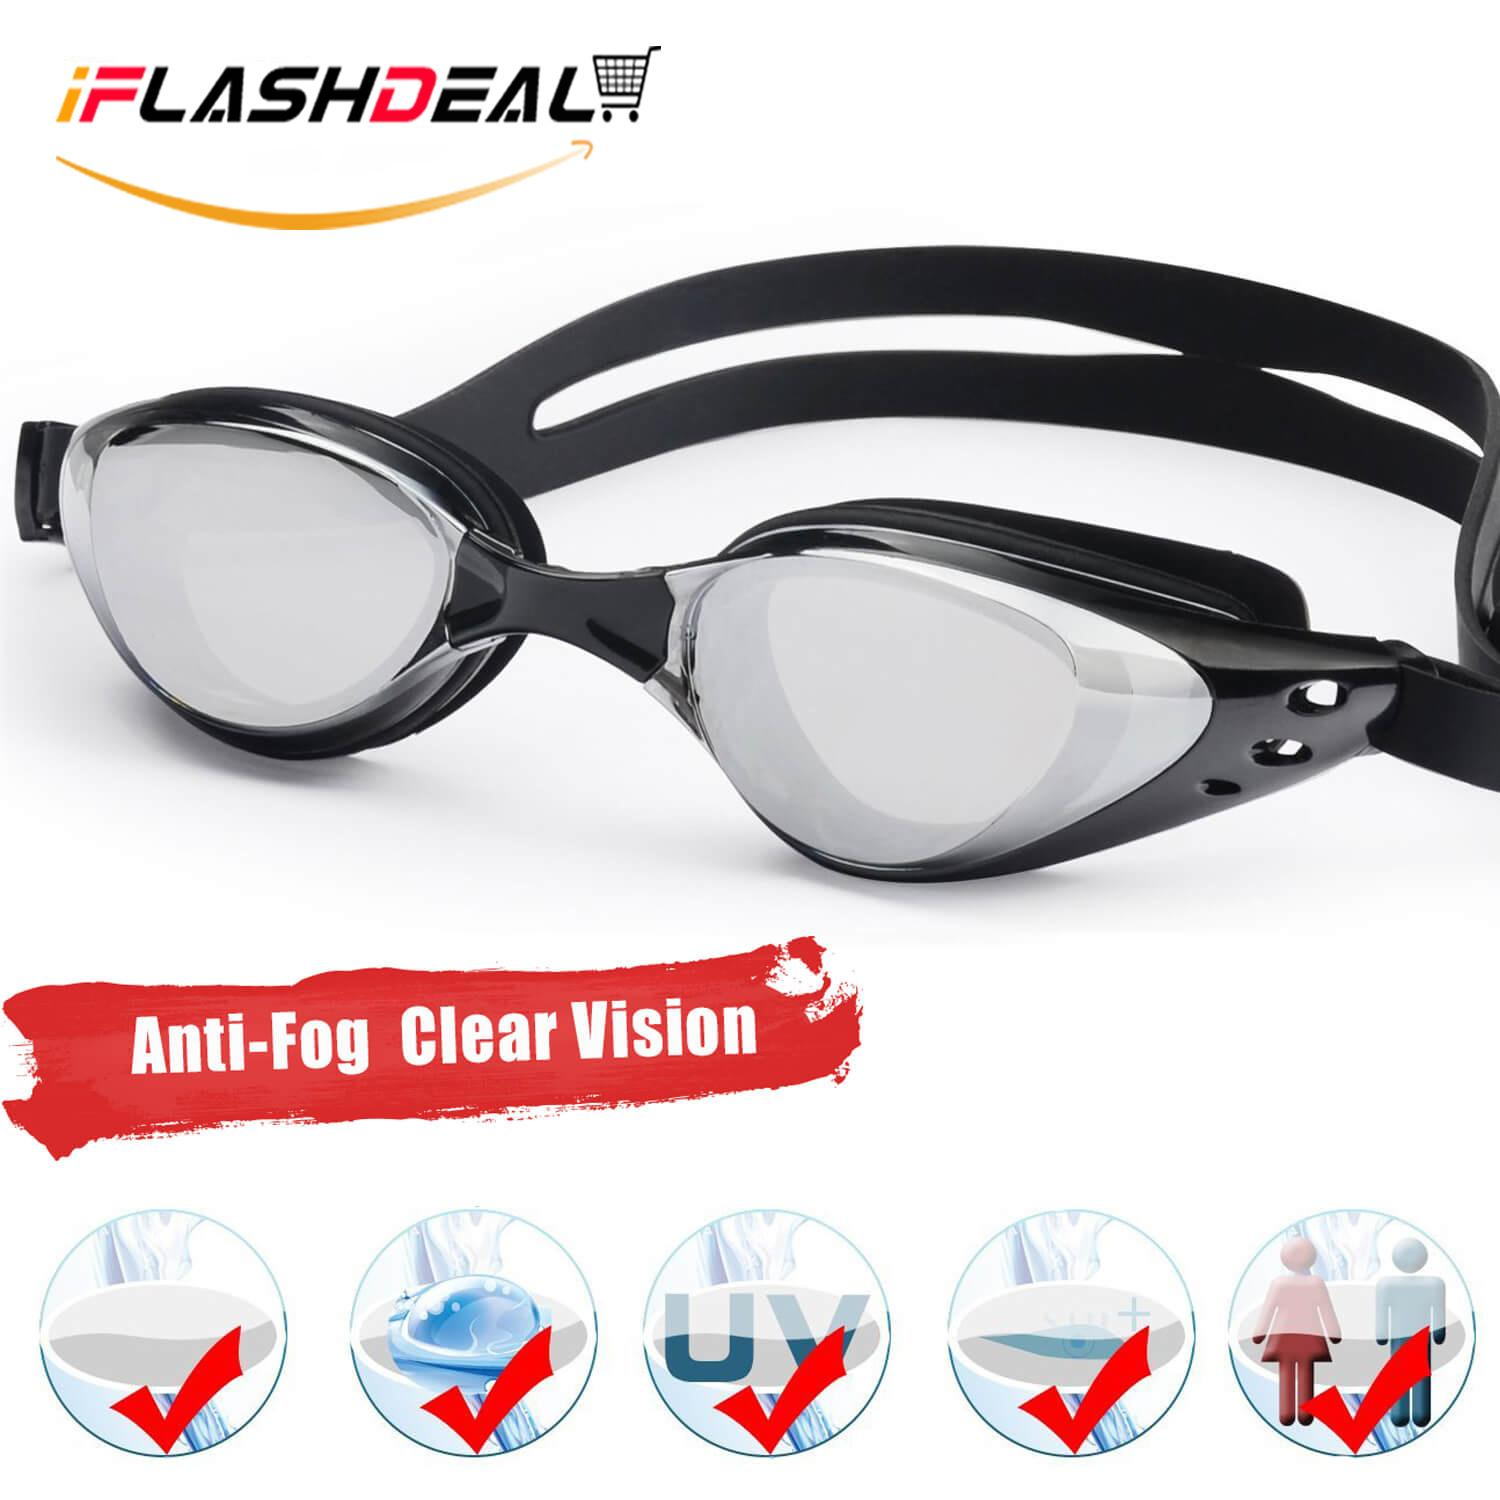 Iflashdeal Kacamata Renang Dewasa Bebas-Fogging Anti Sinar Uv Berenang Lensa Kacamata Renang Olahraga Air Outdoor Swimming Goggle By Iflashdeal.